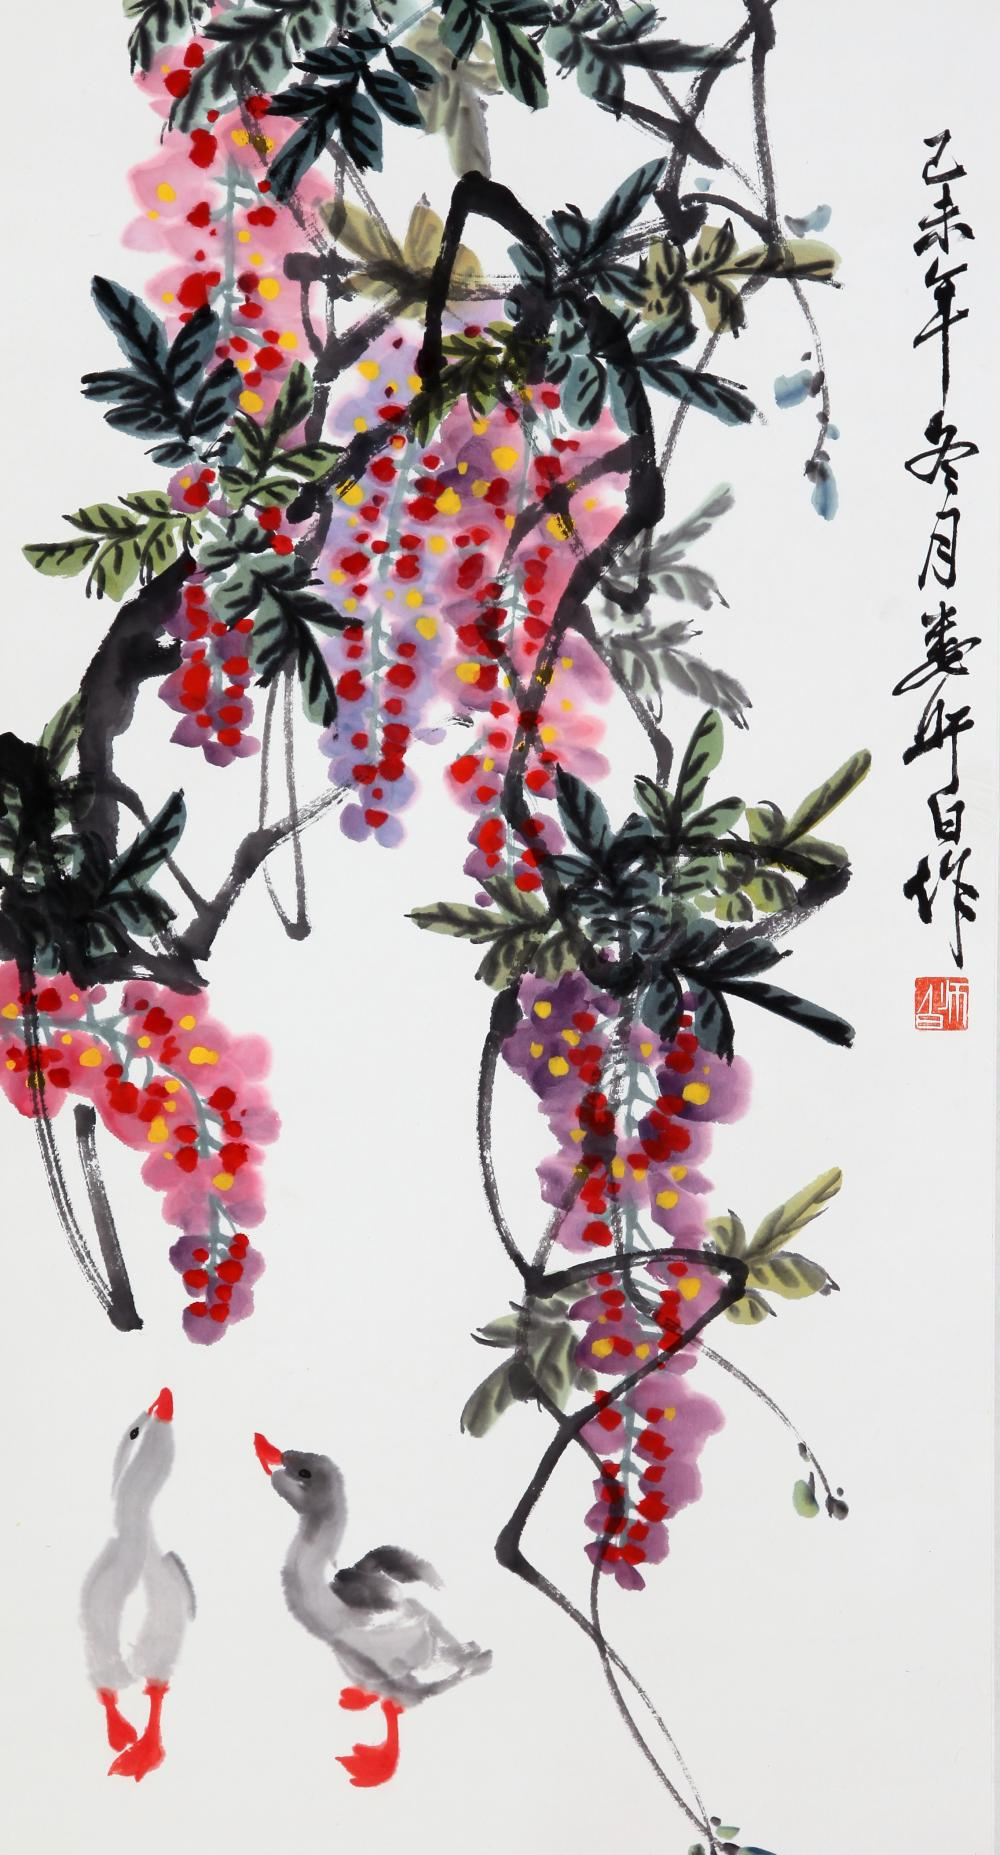 CHINESE PAINTING OF DUCKS UNDER GRAPEVINE